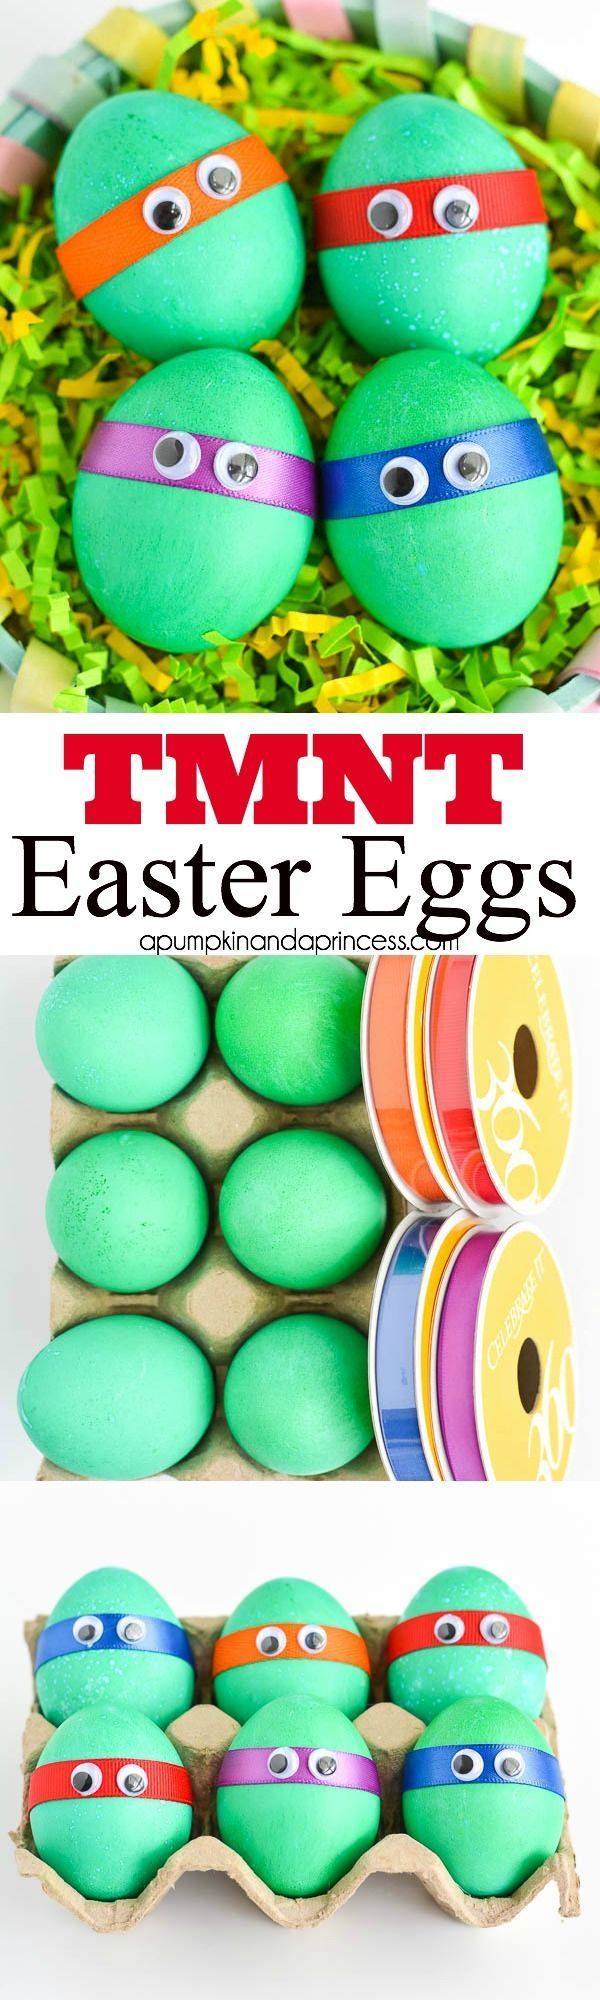 663 best easter crafting ideas images on pinterest for Easter craft ideas for young adults